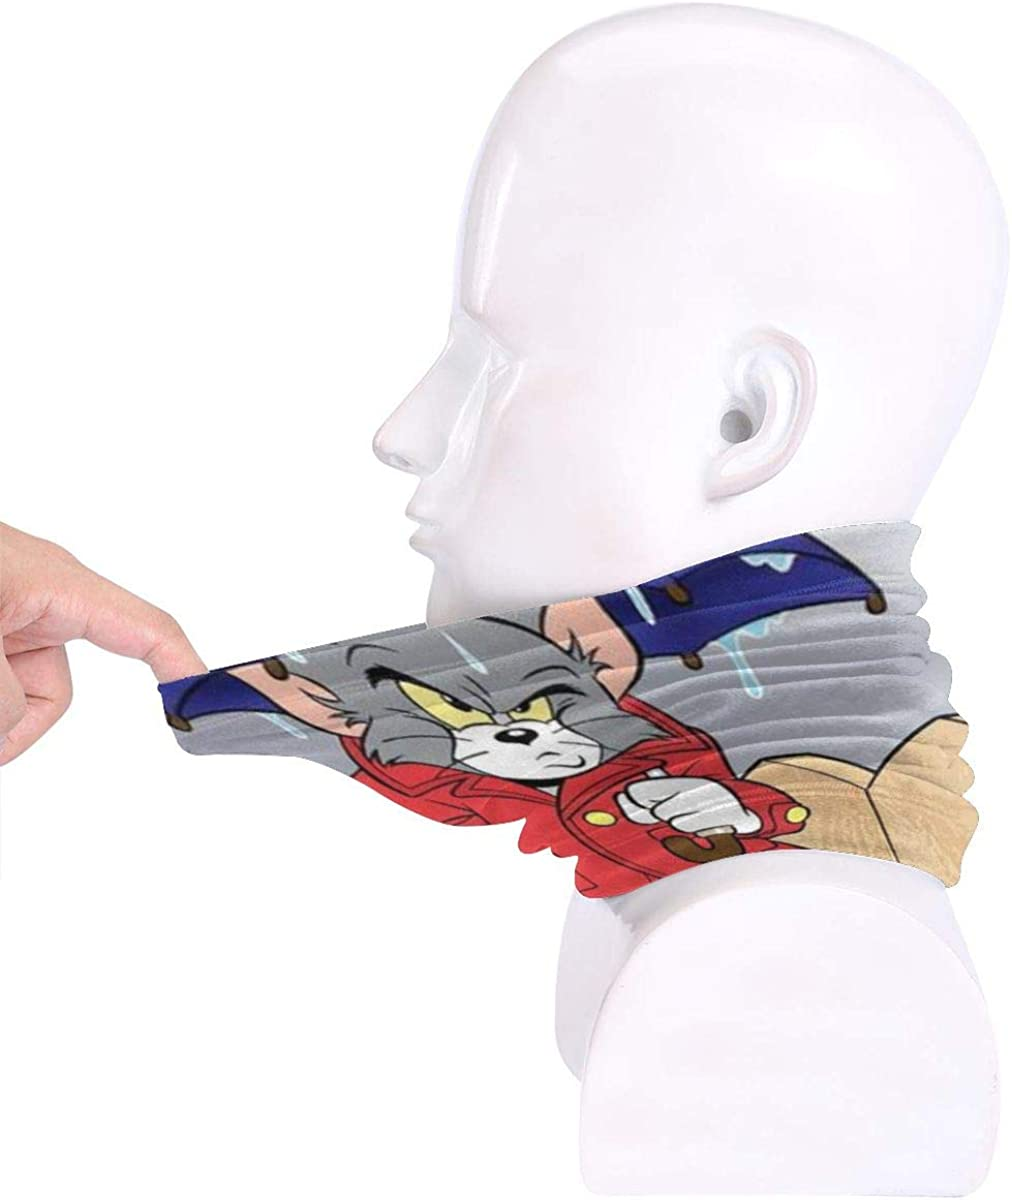 Tom /& Jerry Scarf Anime Headpiece Dustproof Face Shield Washable with 2 Filters for Men Women Outdoor Tom /& Jerry 01